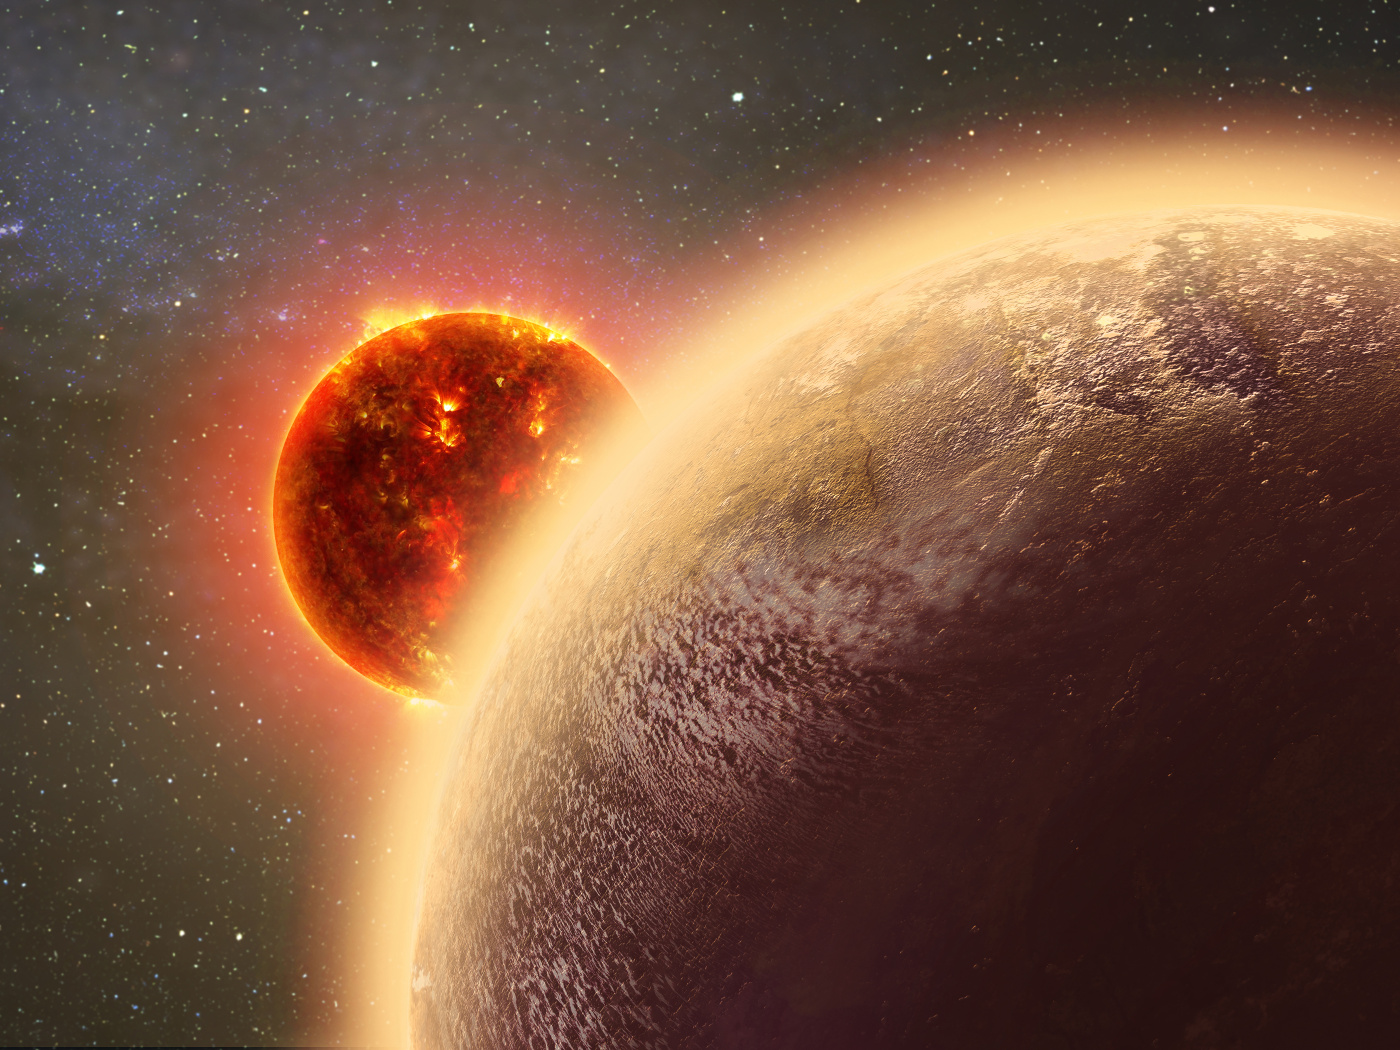 This artist's conception shows the rocky exoplanet GJ1132b, located 39 light-years from Earth. New research shows that it might possess a thin, oxygen atmosphere — but no life due to its extreme heat. Illustration credit: Dana Berry / Skyworks Digital / CfA.